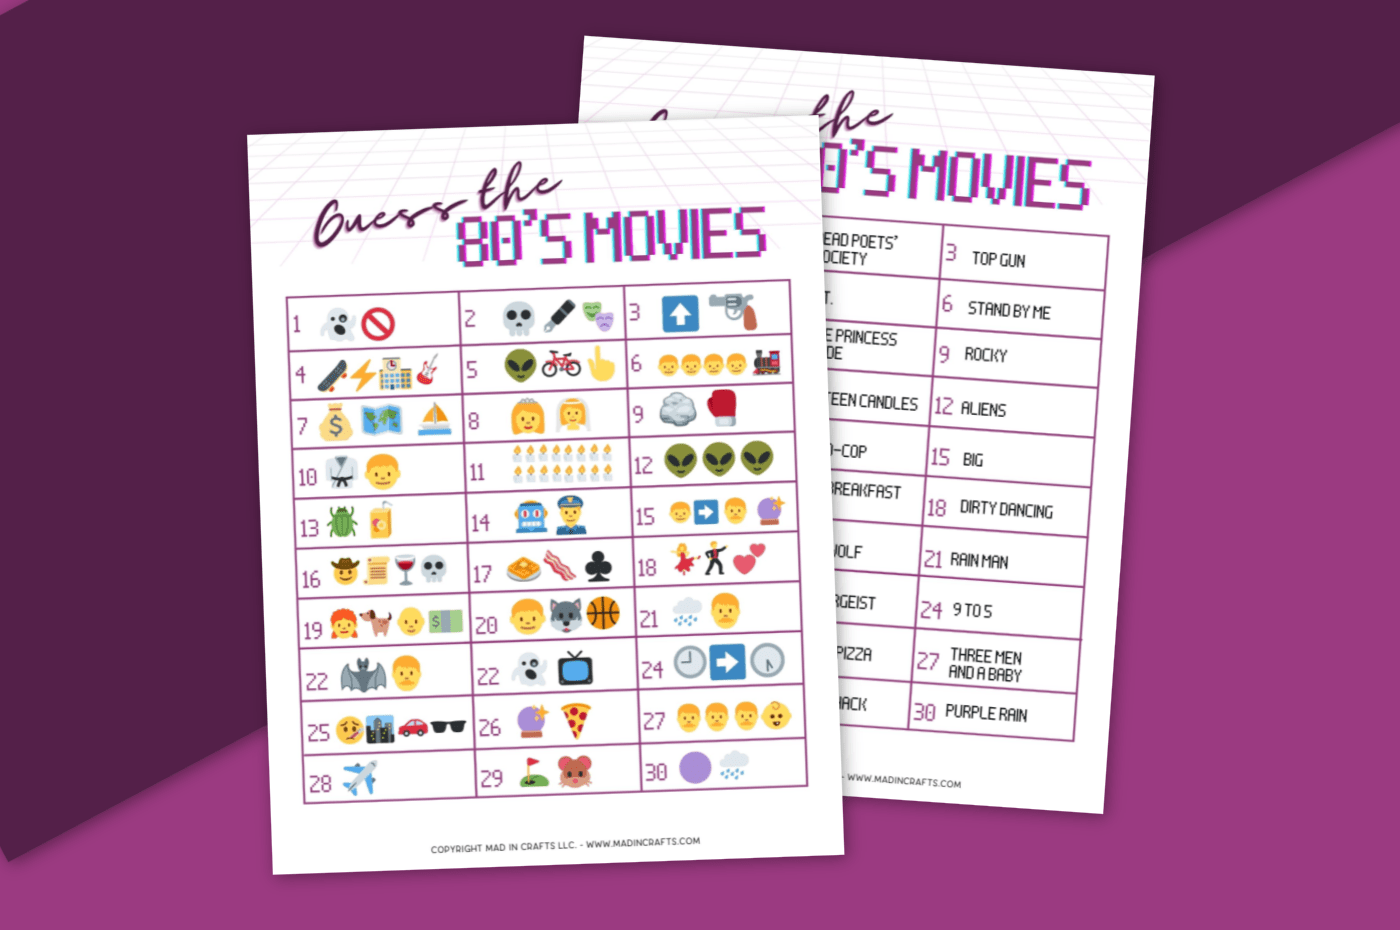 Guess the 80s Movie Emoji prinable game and answers